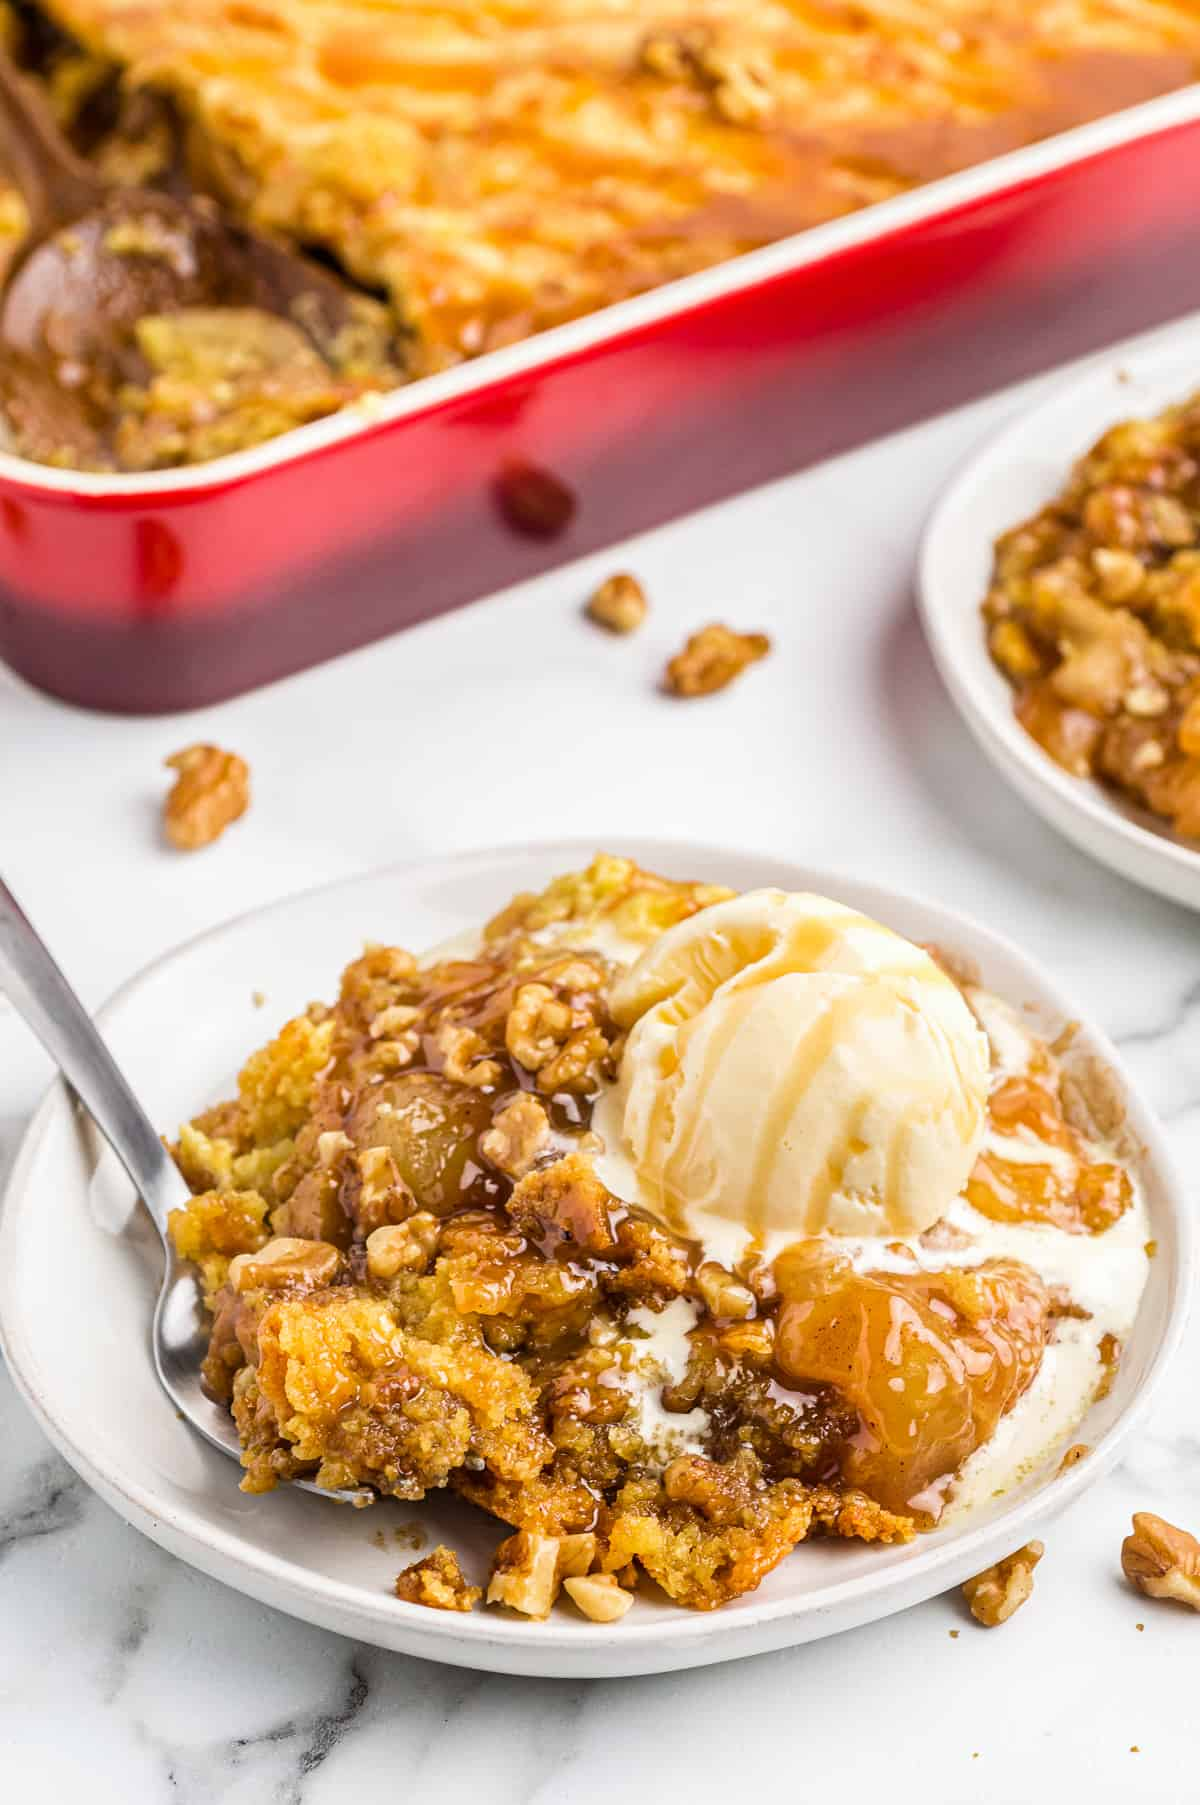 white plate with caramel apple dump cake and ice cream